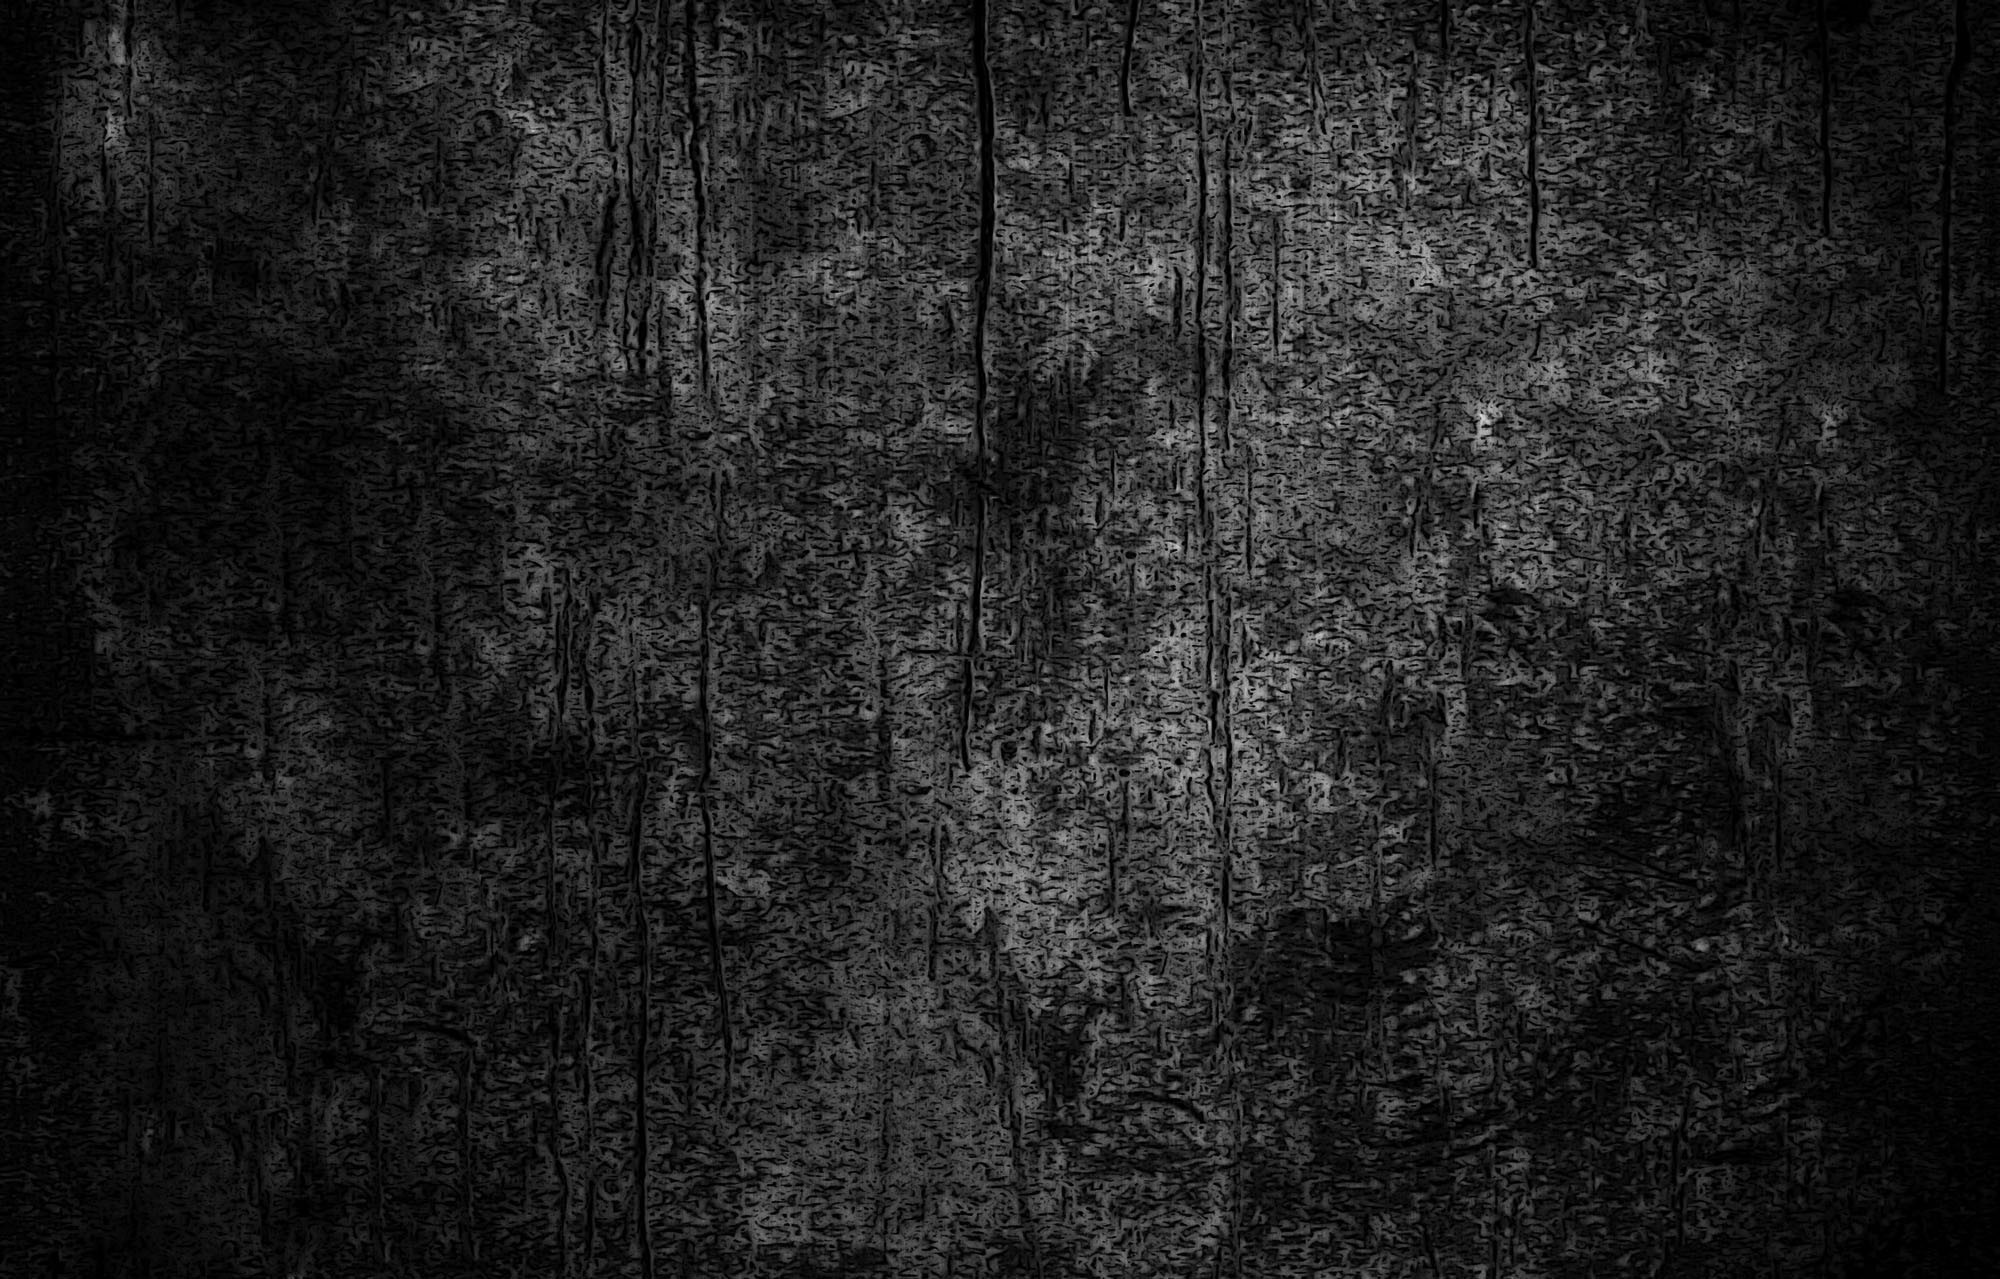 Hd Wallpapers For Mobile Free Download 480x800 Black Grunge Background 183 ① Download Free Awesome Hd